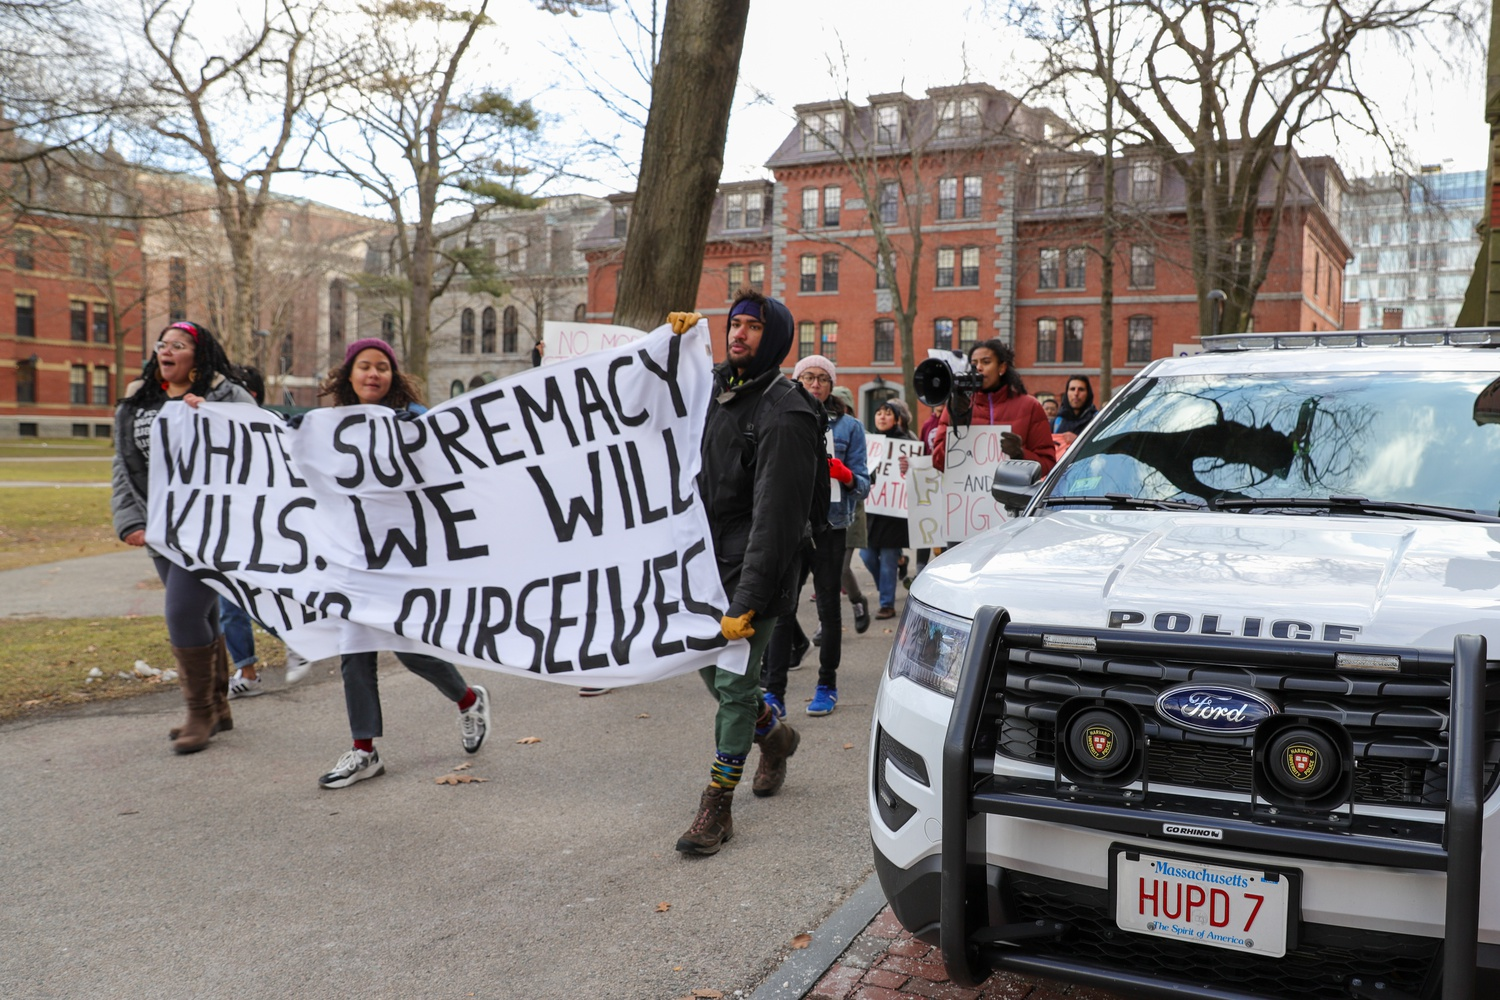 The Harvard Alliance Against Campus Cops called for the abolition of the Harvard University Police Department and presented a report on the police force's history and procedures in a remote event Tuesday.